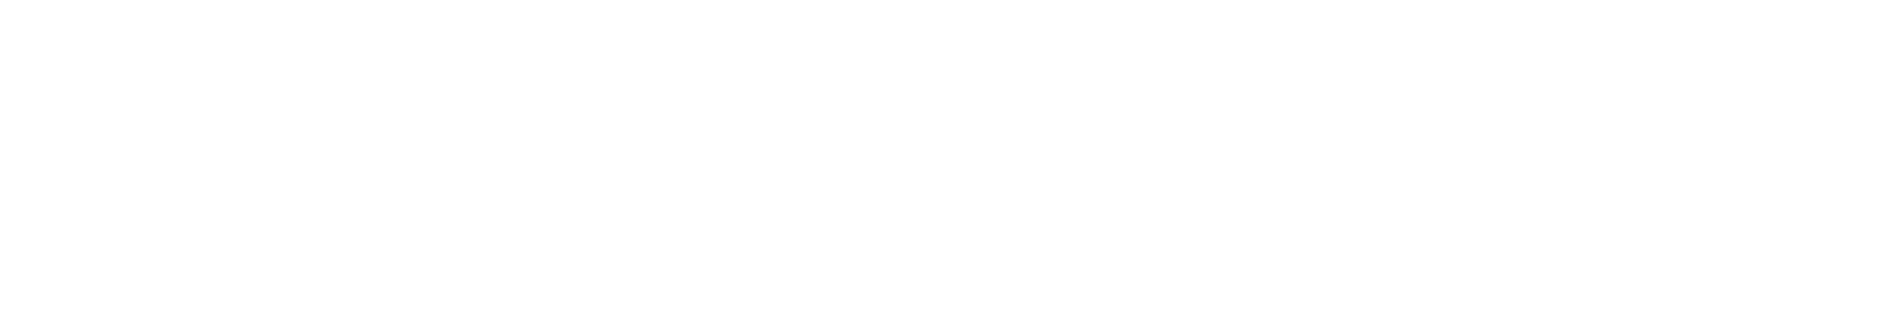 sailorrose logo design